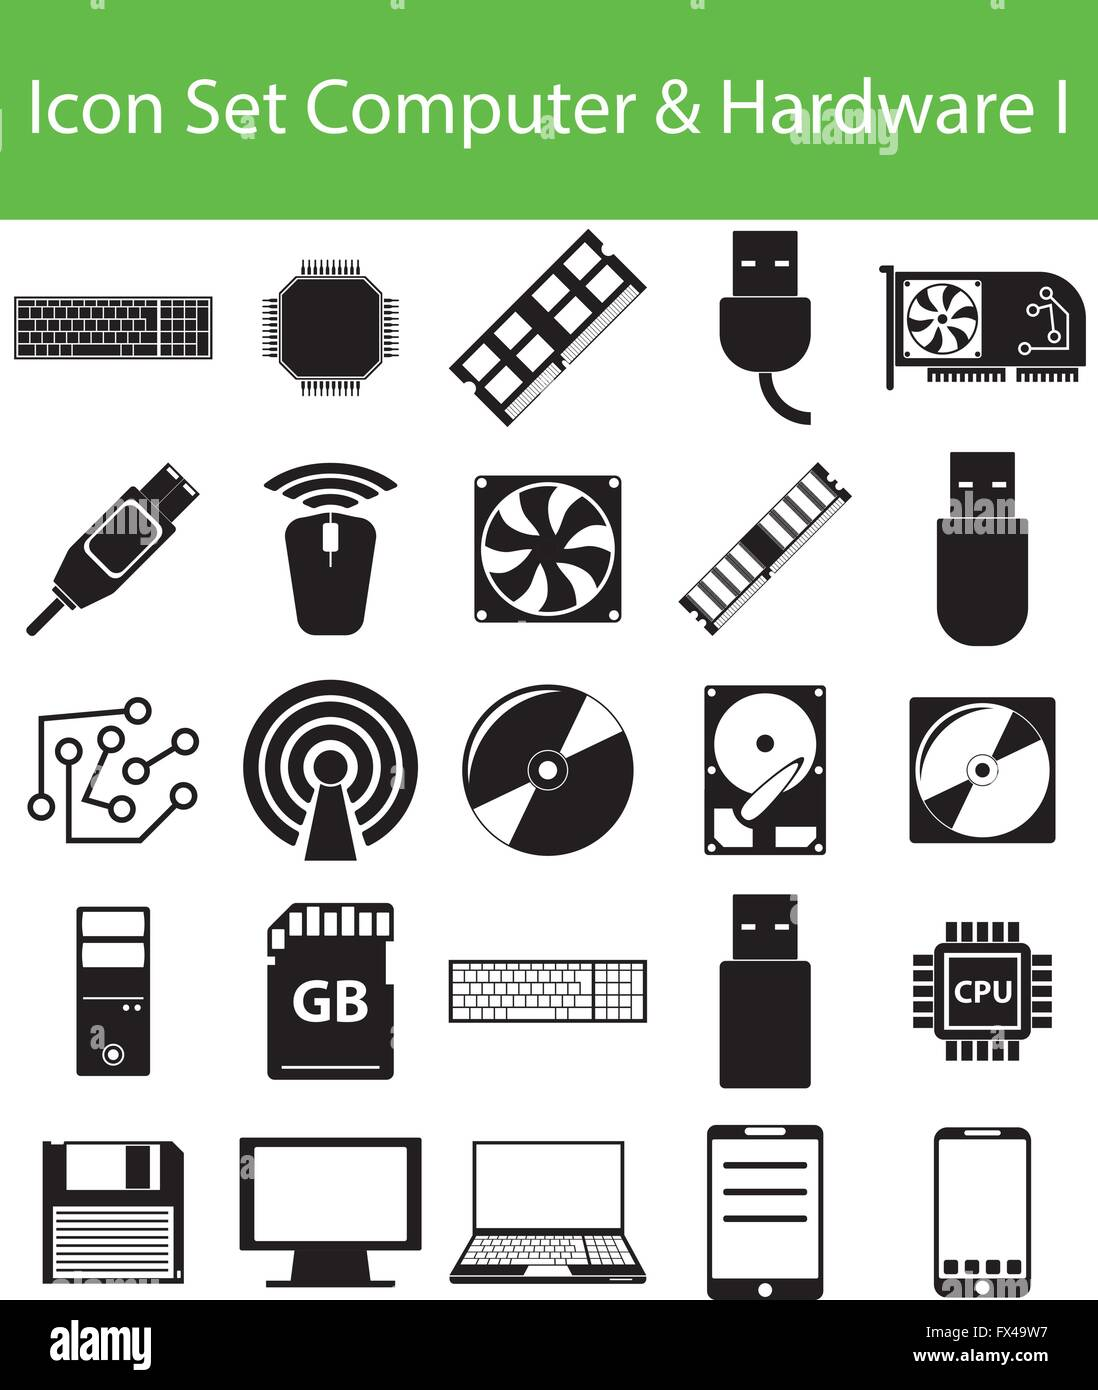 Wireless Mouse Pictogram Stock Photos & Wireless Mouse Pictogram ...